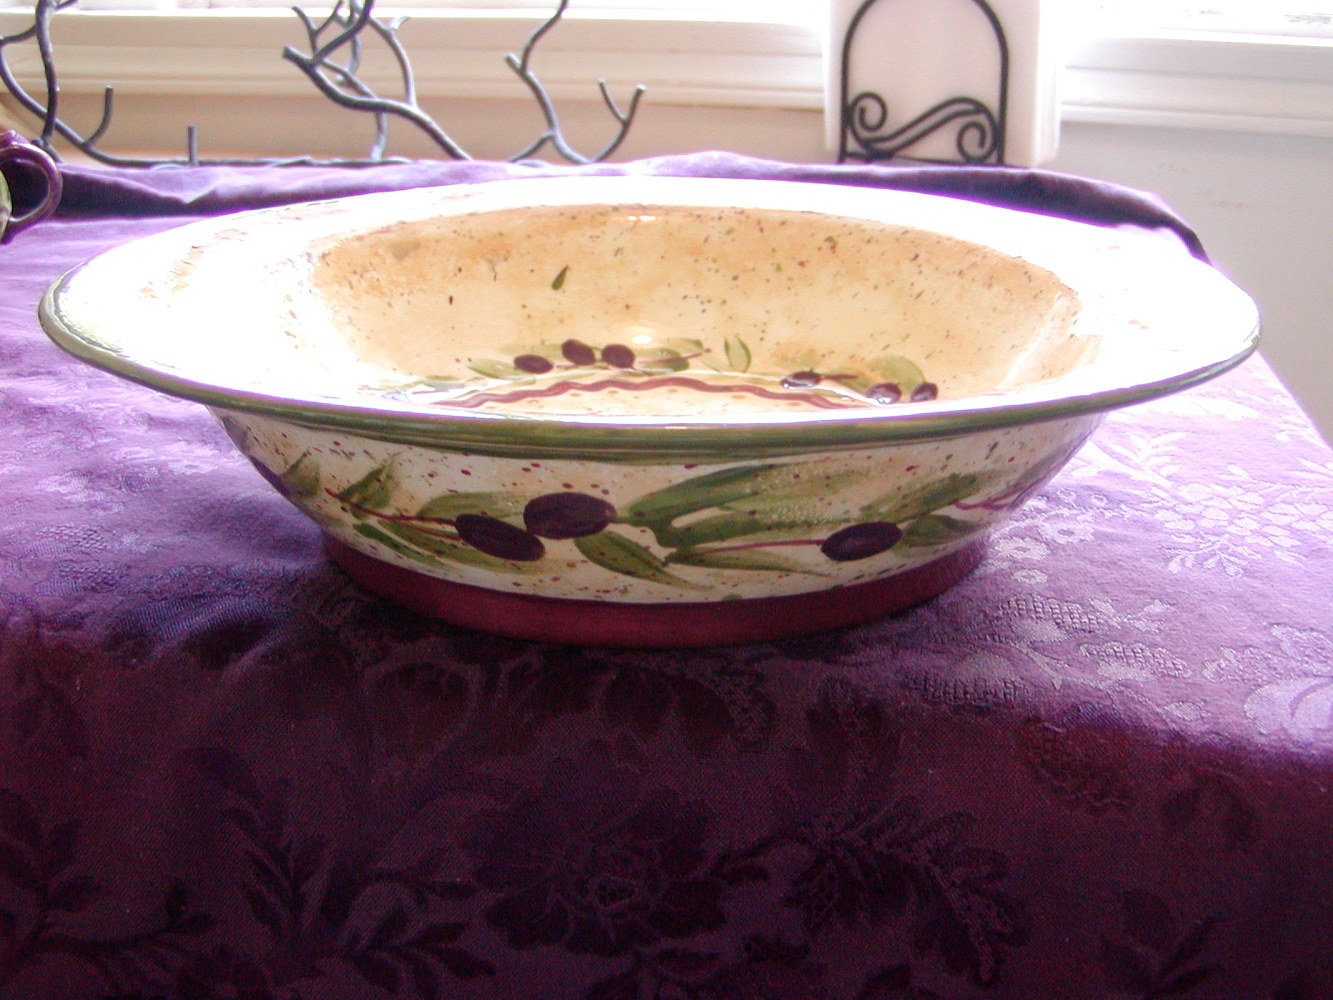 Painting Italianate Eclectic Glazeworks: Pasta Bowl by Linnie (Victoria) Aikens Lindsay